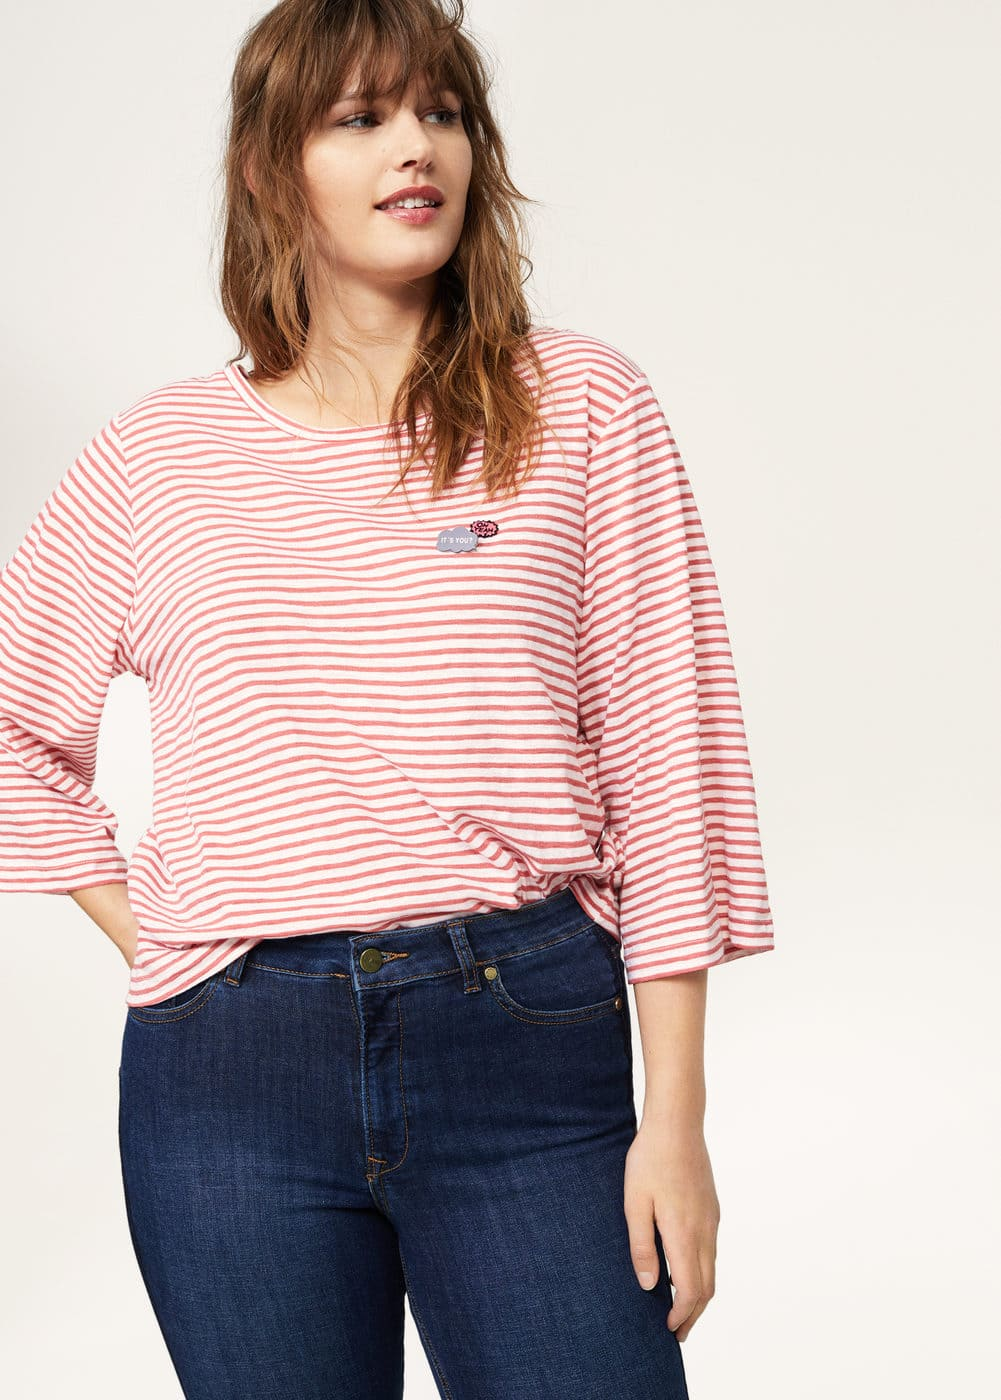 Appliqués striped t-shirt | VIOLETA BY MANGO